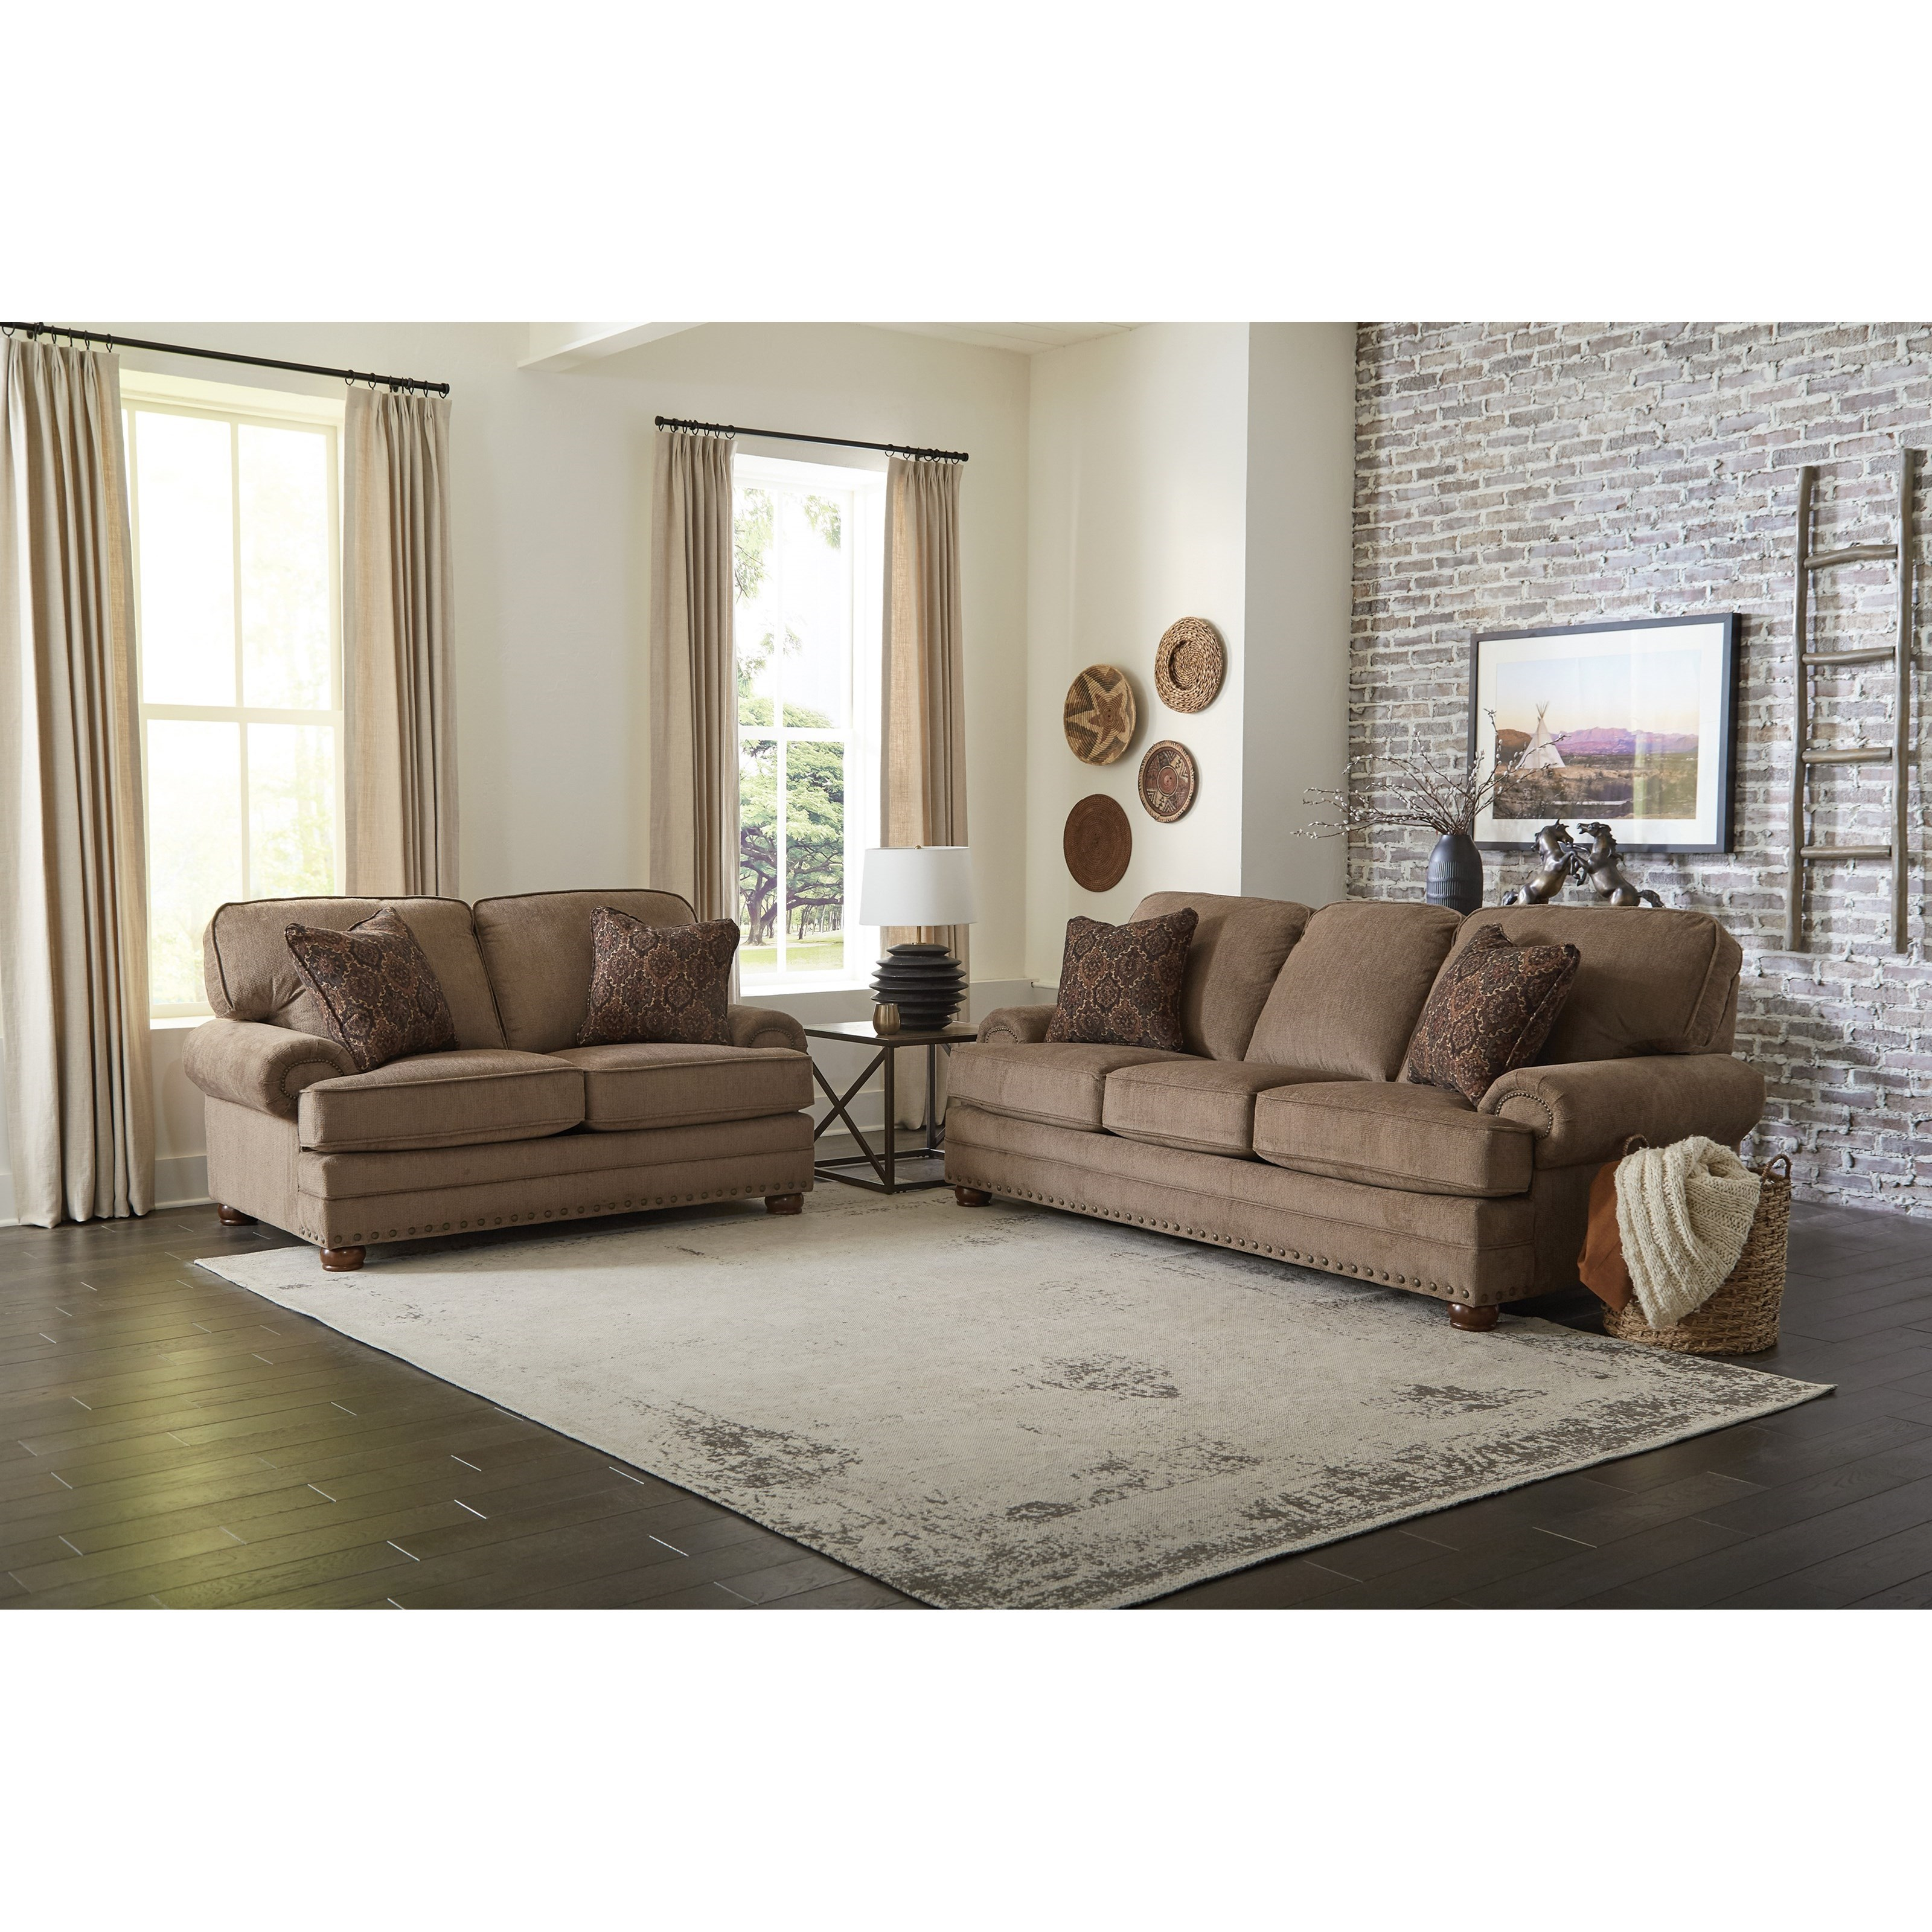 Singletary Living Room Group by Jackson Furniture at Lapeer Furniture & Mattress Center